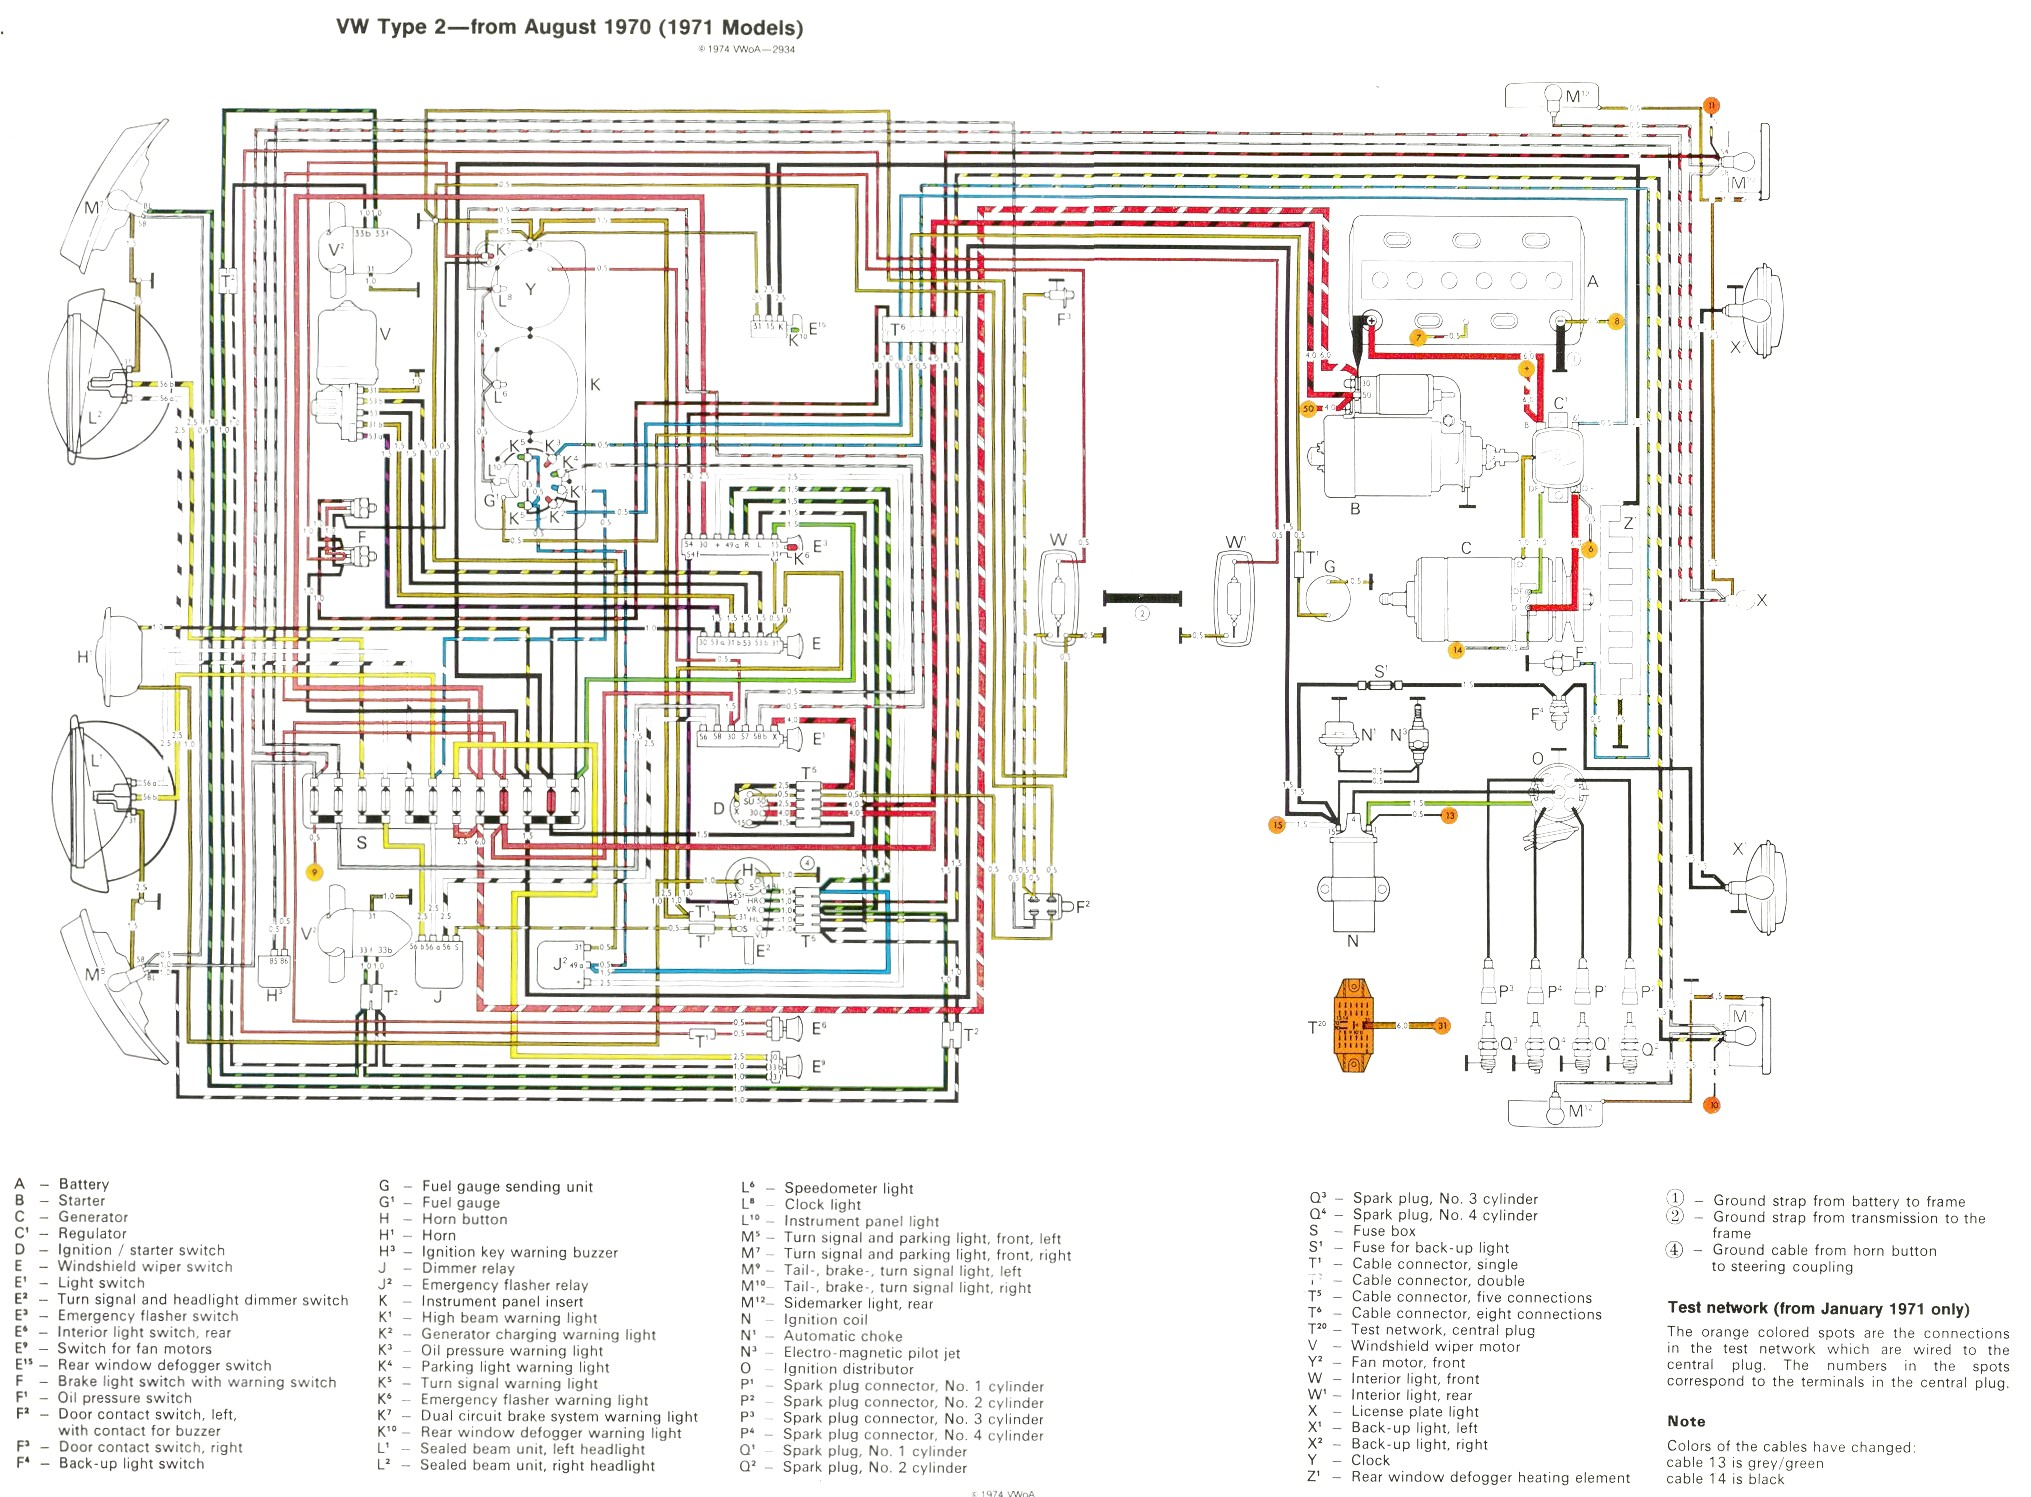 Vw Bus Wiring Diagram: Baywindow Fusebox Layout,Design